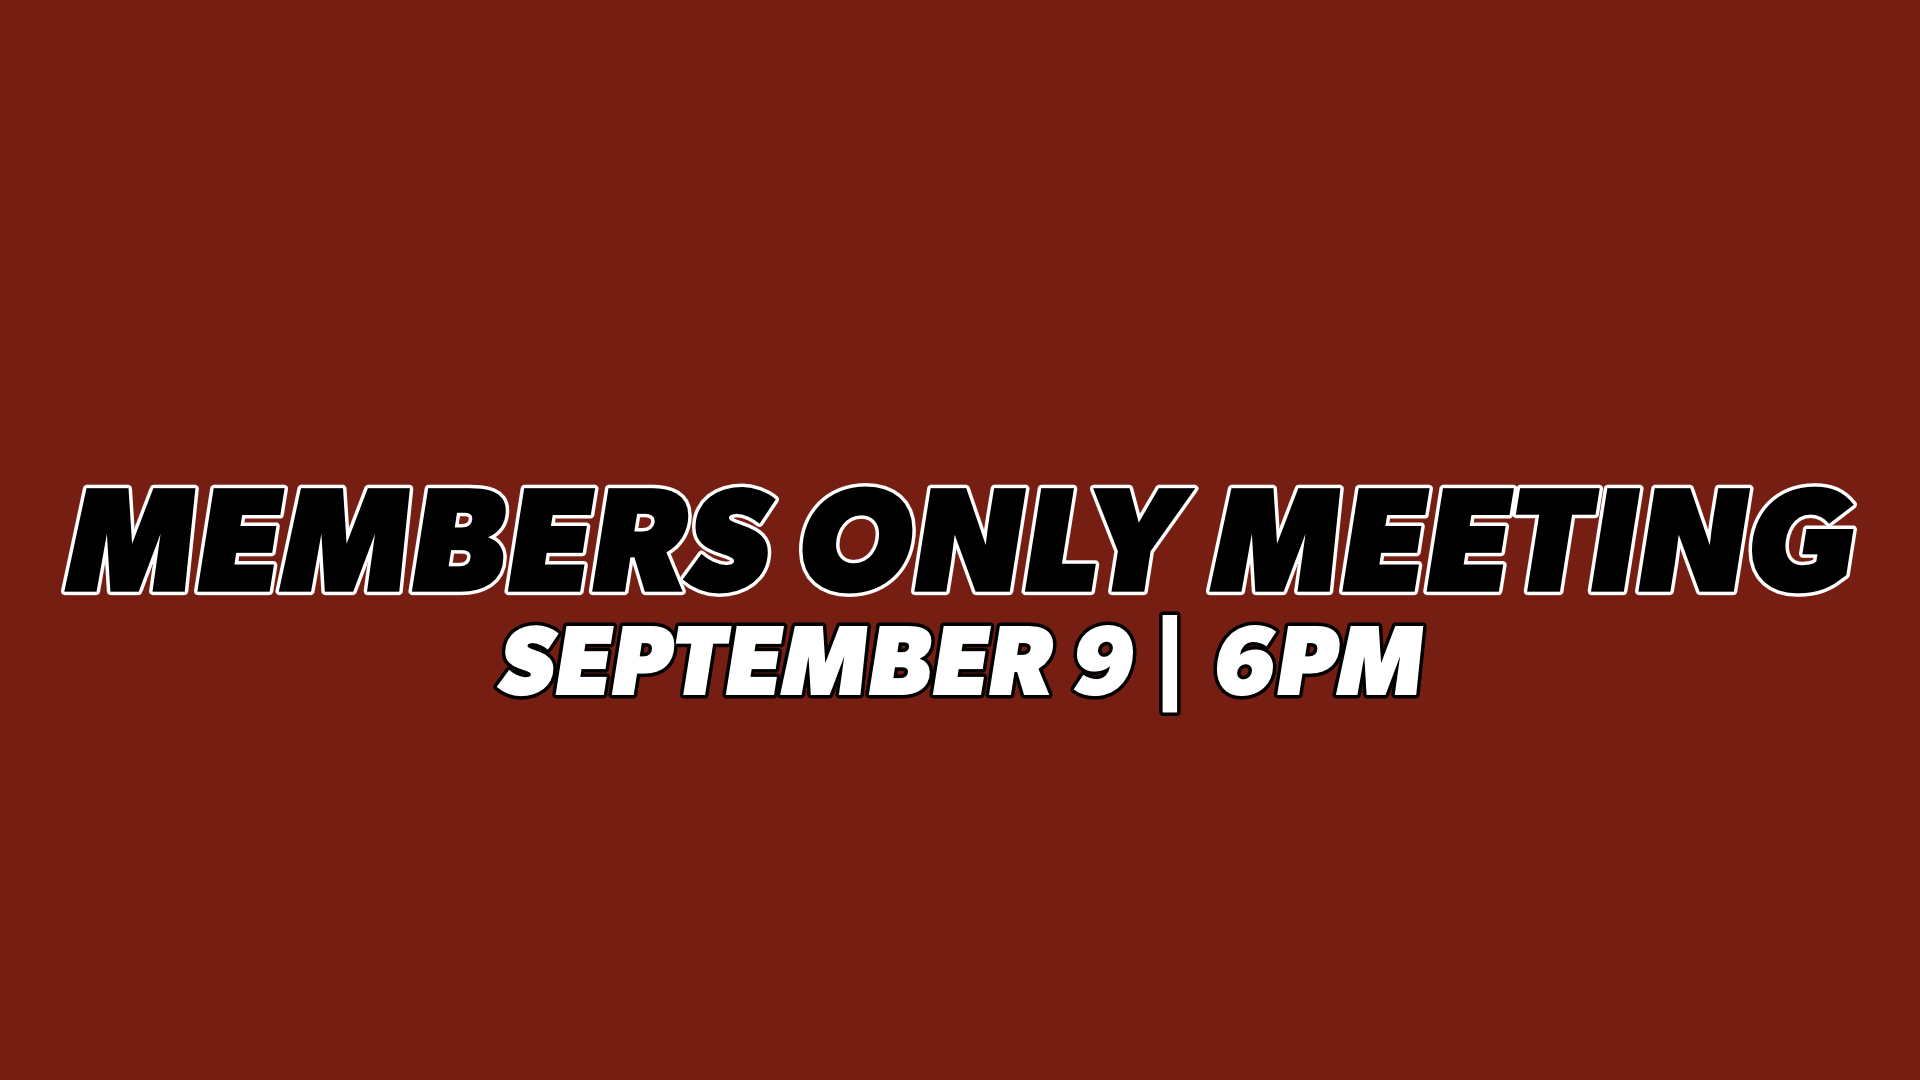 Members Only Meeting.jpg